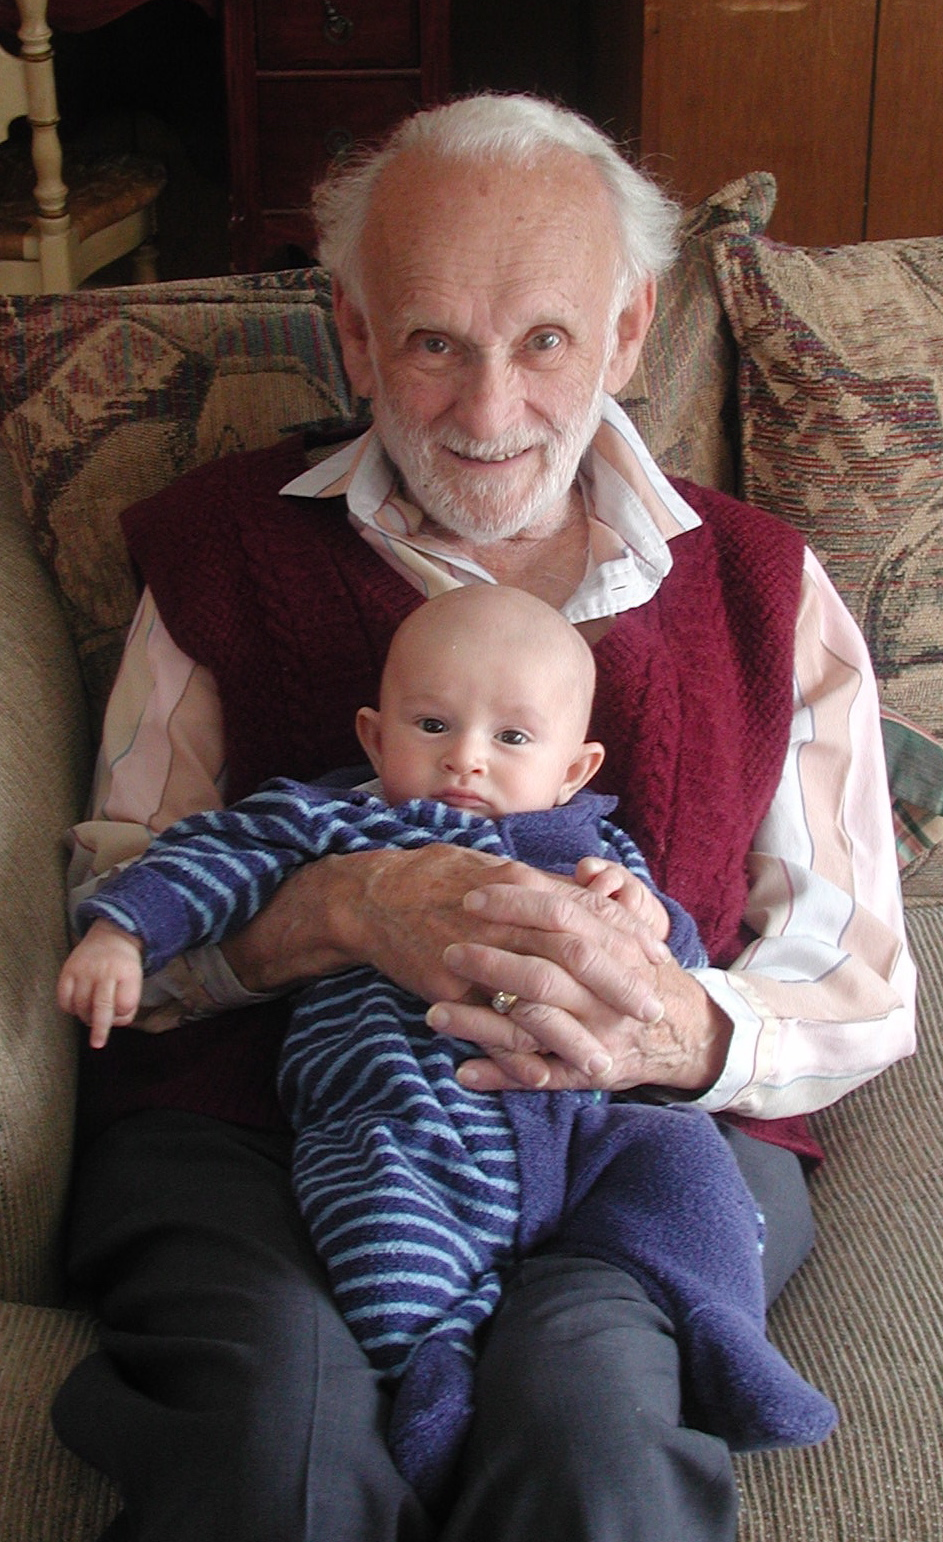 My dad with my older son in 2003.